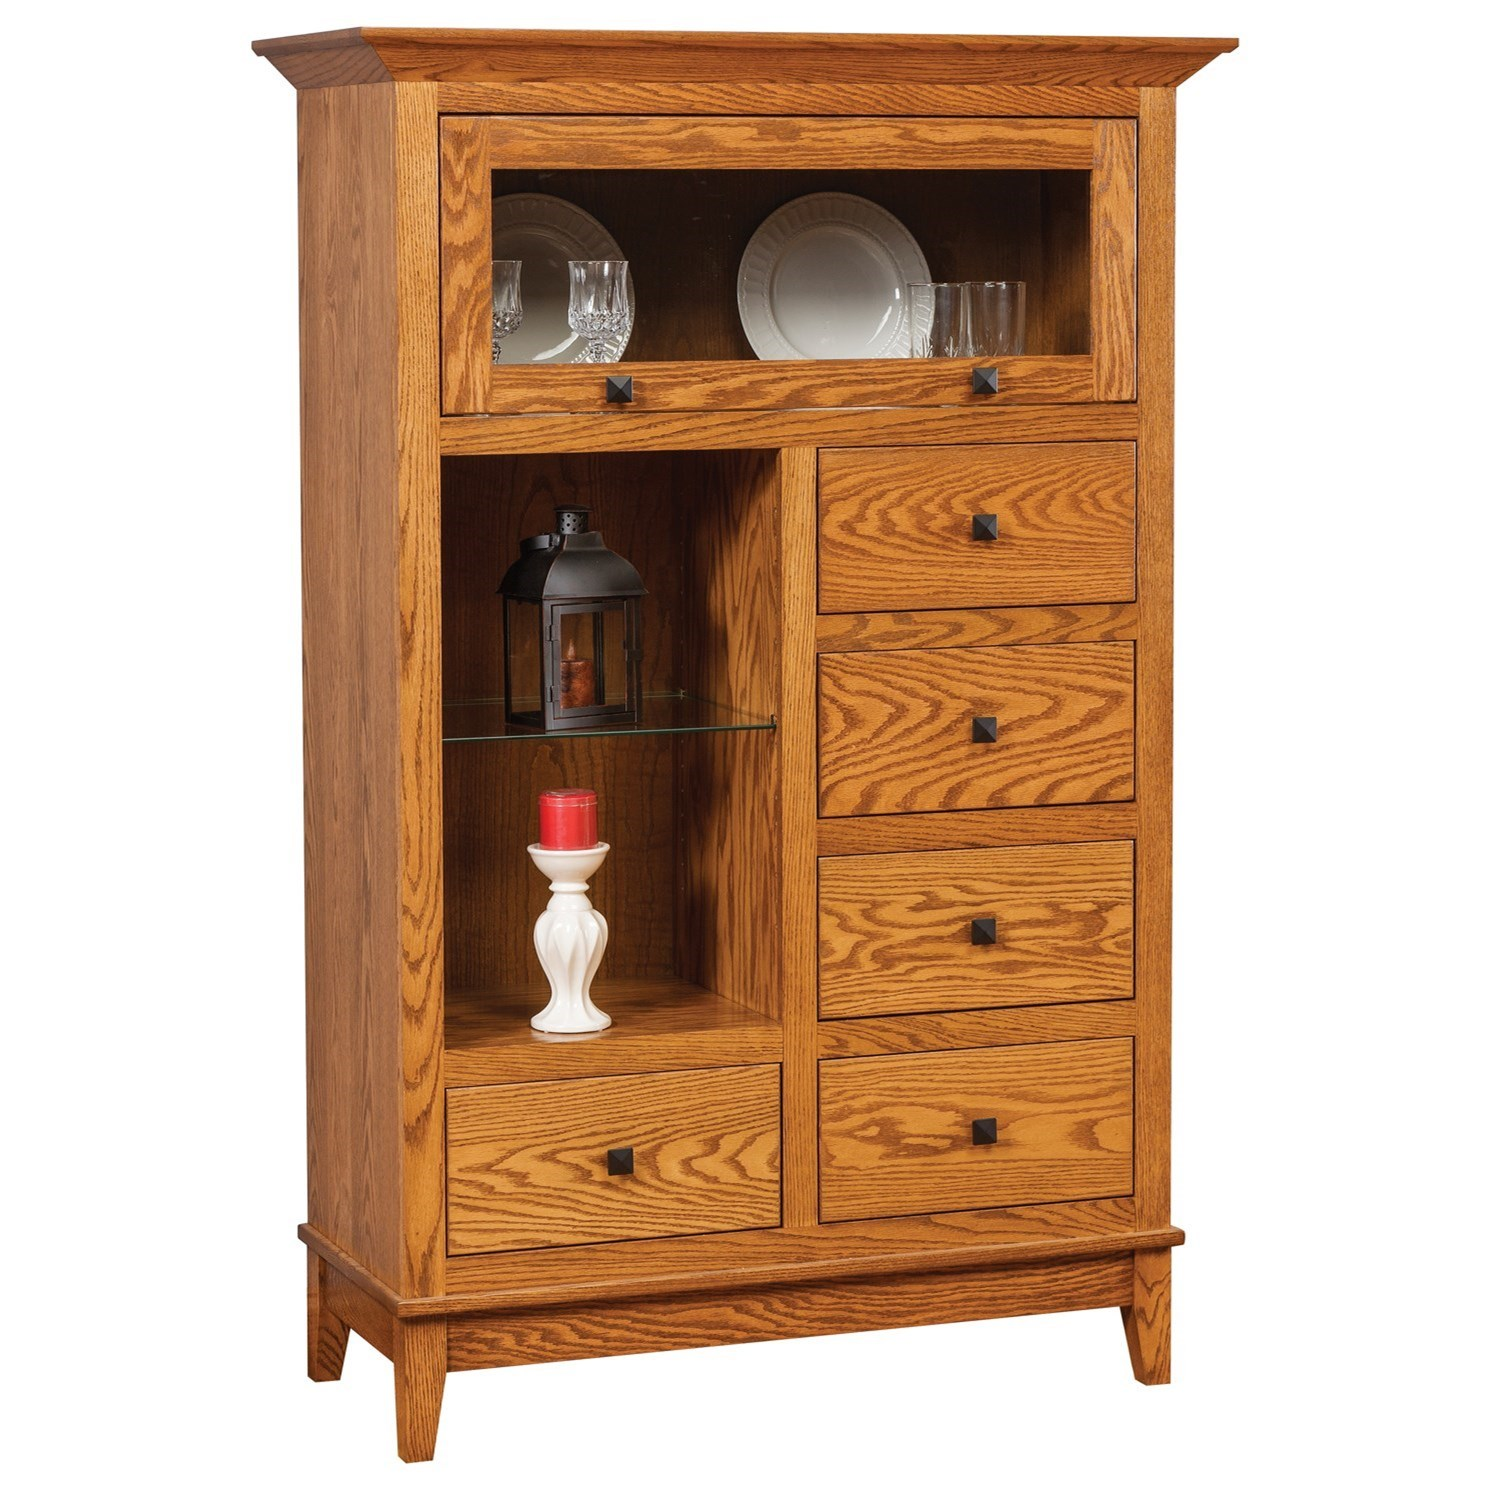 Canterbury Cabinet by Meadow Lane Wood at Saugerties Furniture Mart